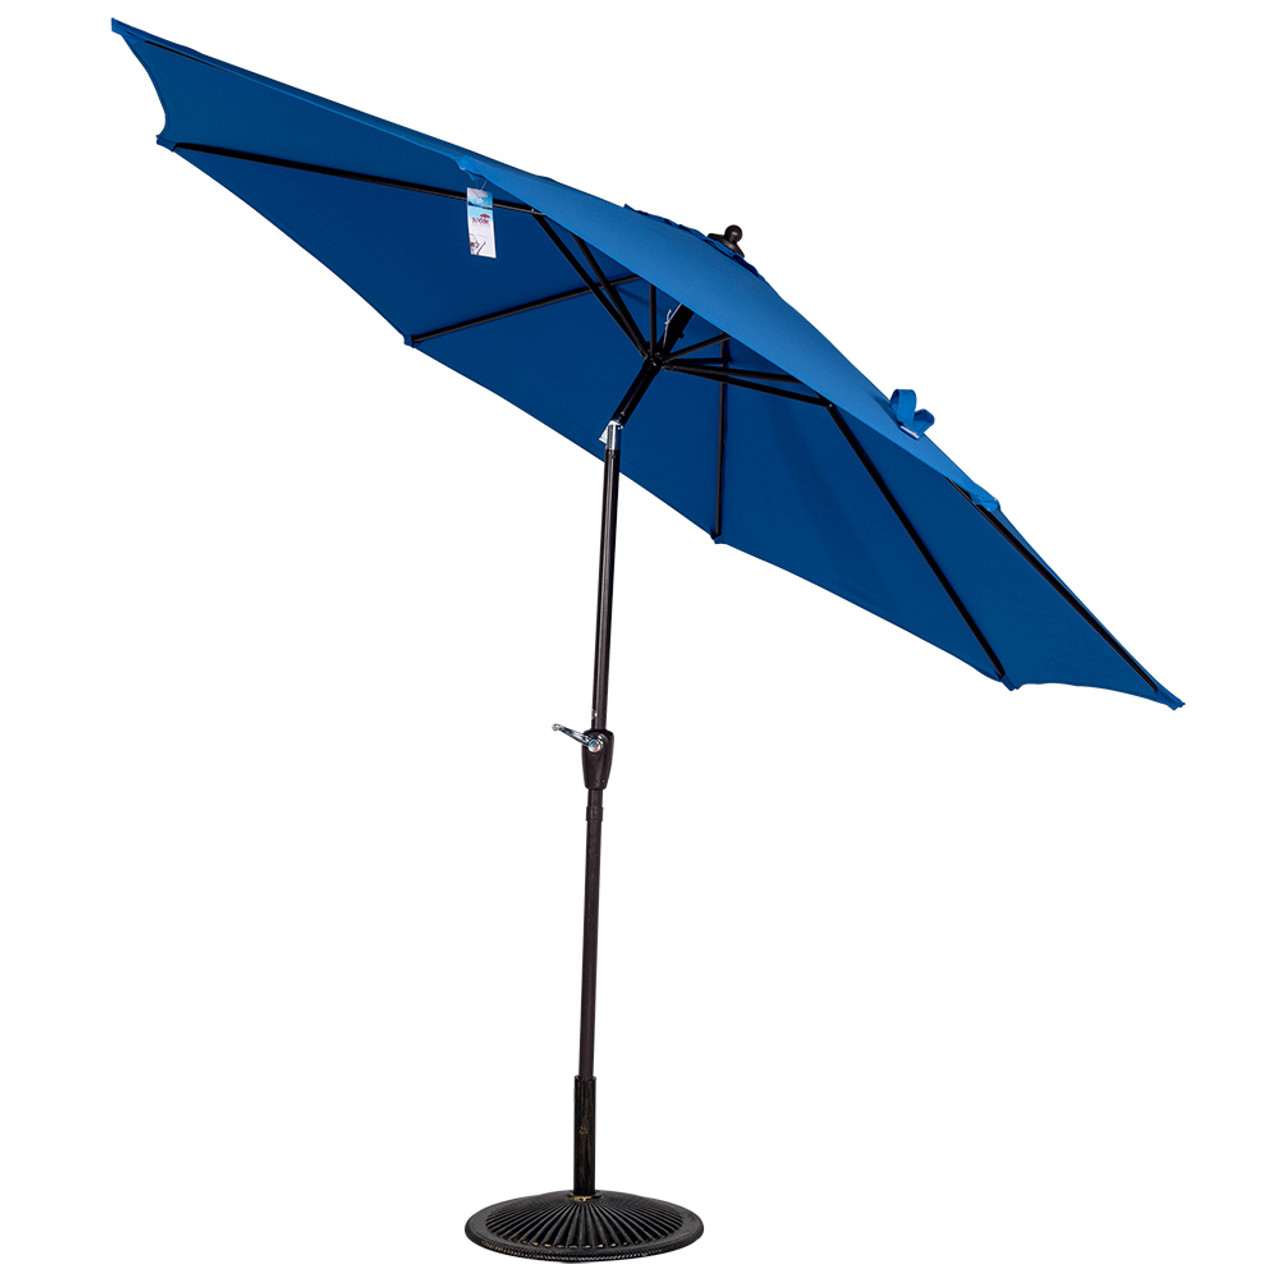 Uv Patio Umbrella: 10 Ft Olefin Fabric Solution Dyed And UV Resistant Patio